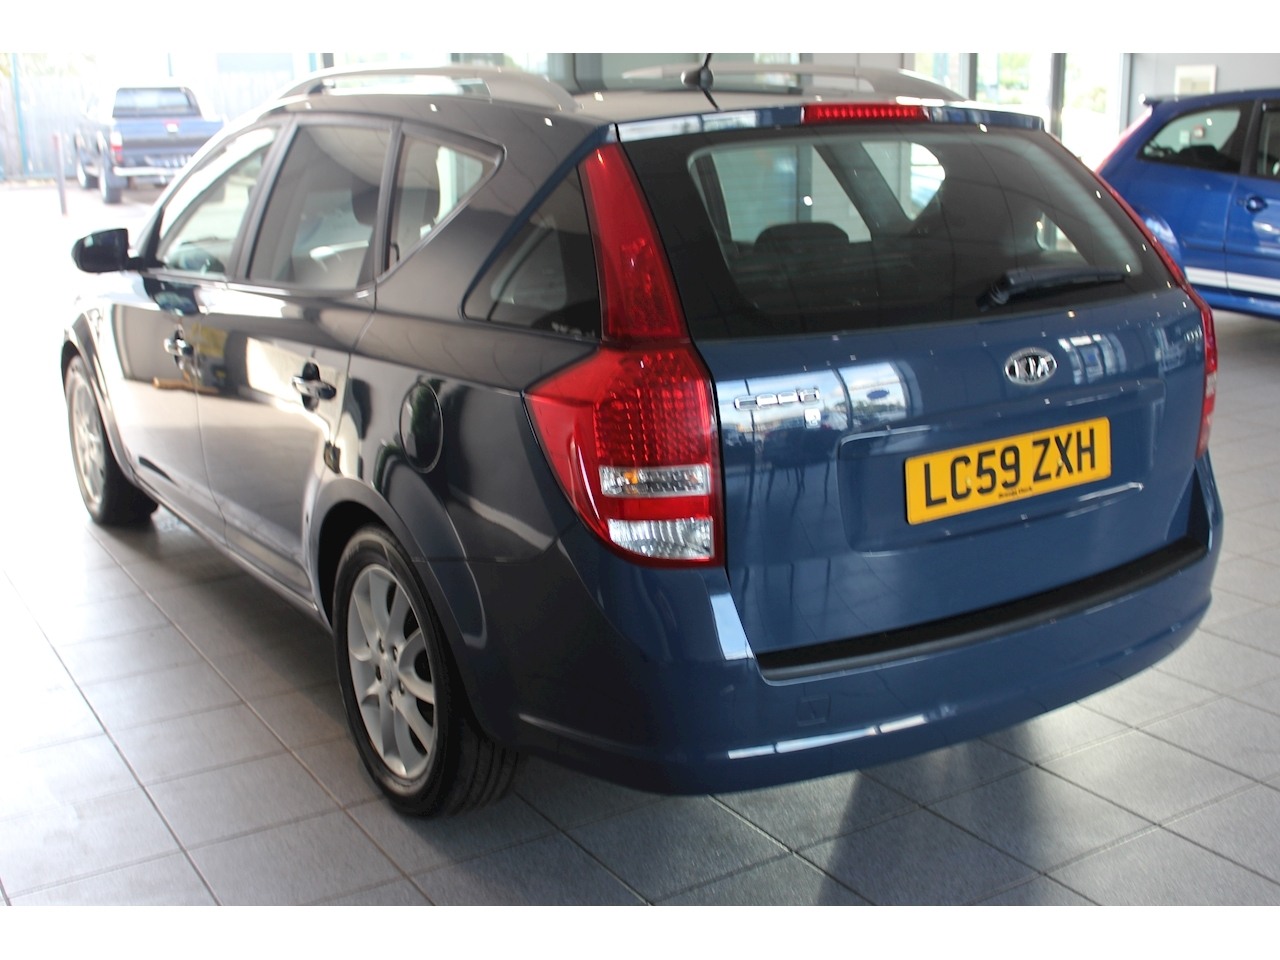 Used 2009 Kia Ceed Crdi 2 Sw Estate 1.6 Manual Diesel For Sale in Tyne And  Wear | Whitley Bay Motors